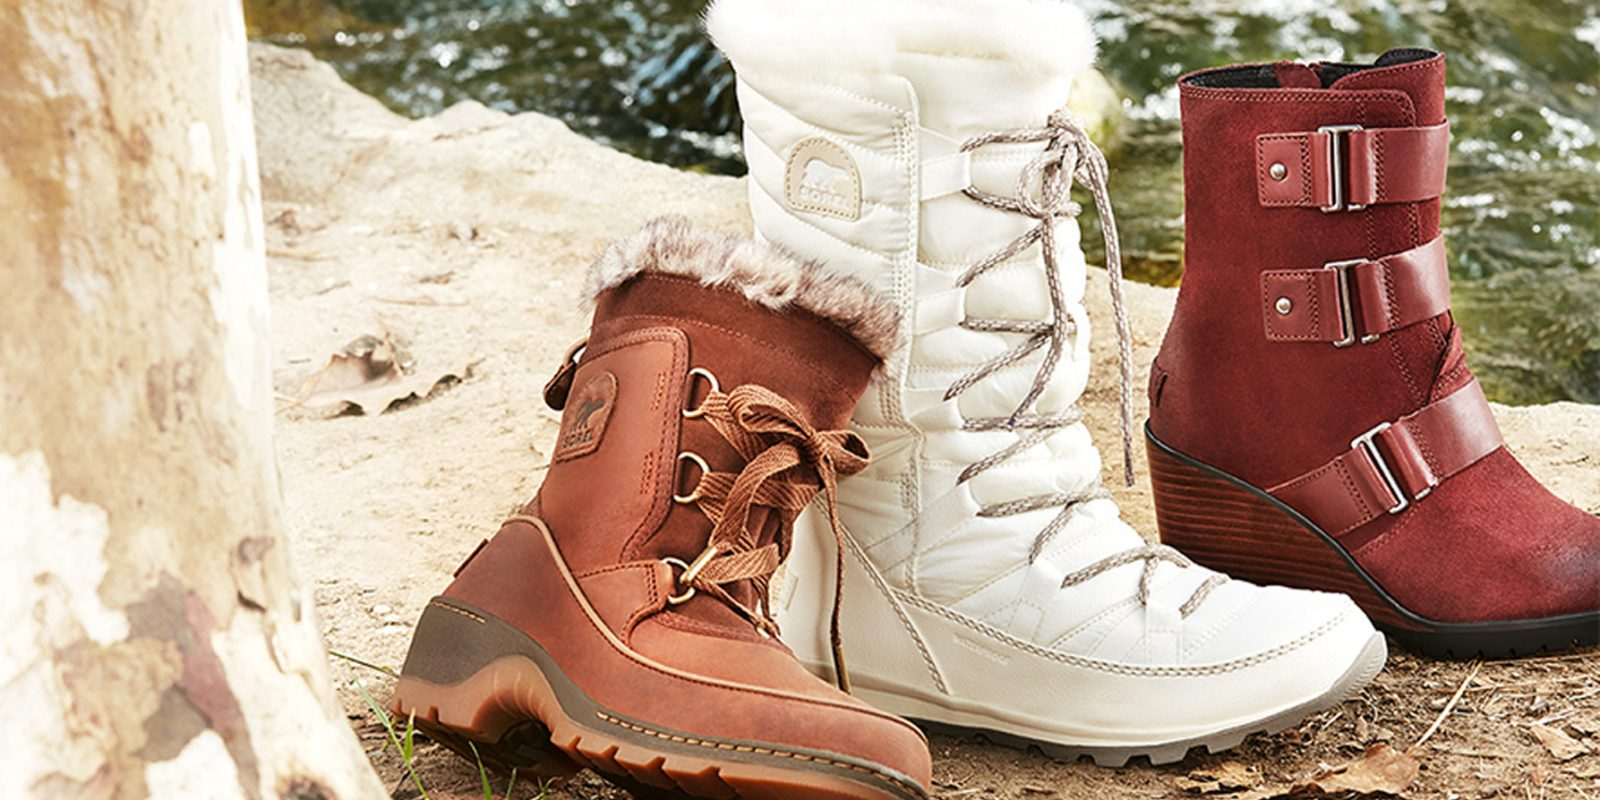 Sorel Boots For Fall And Winter From 60 During Nordstrom